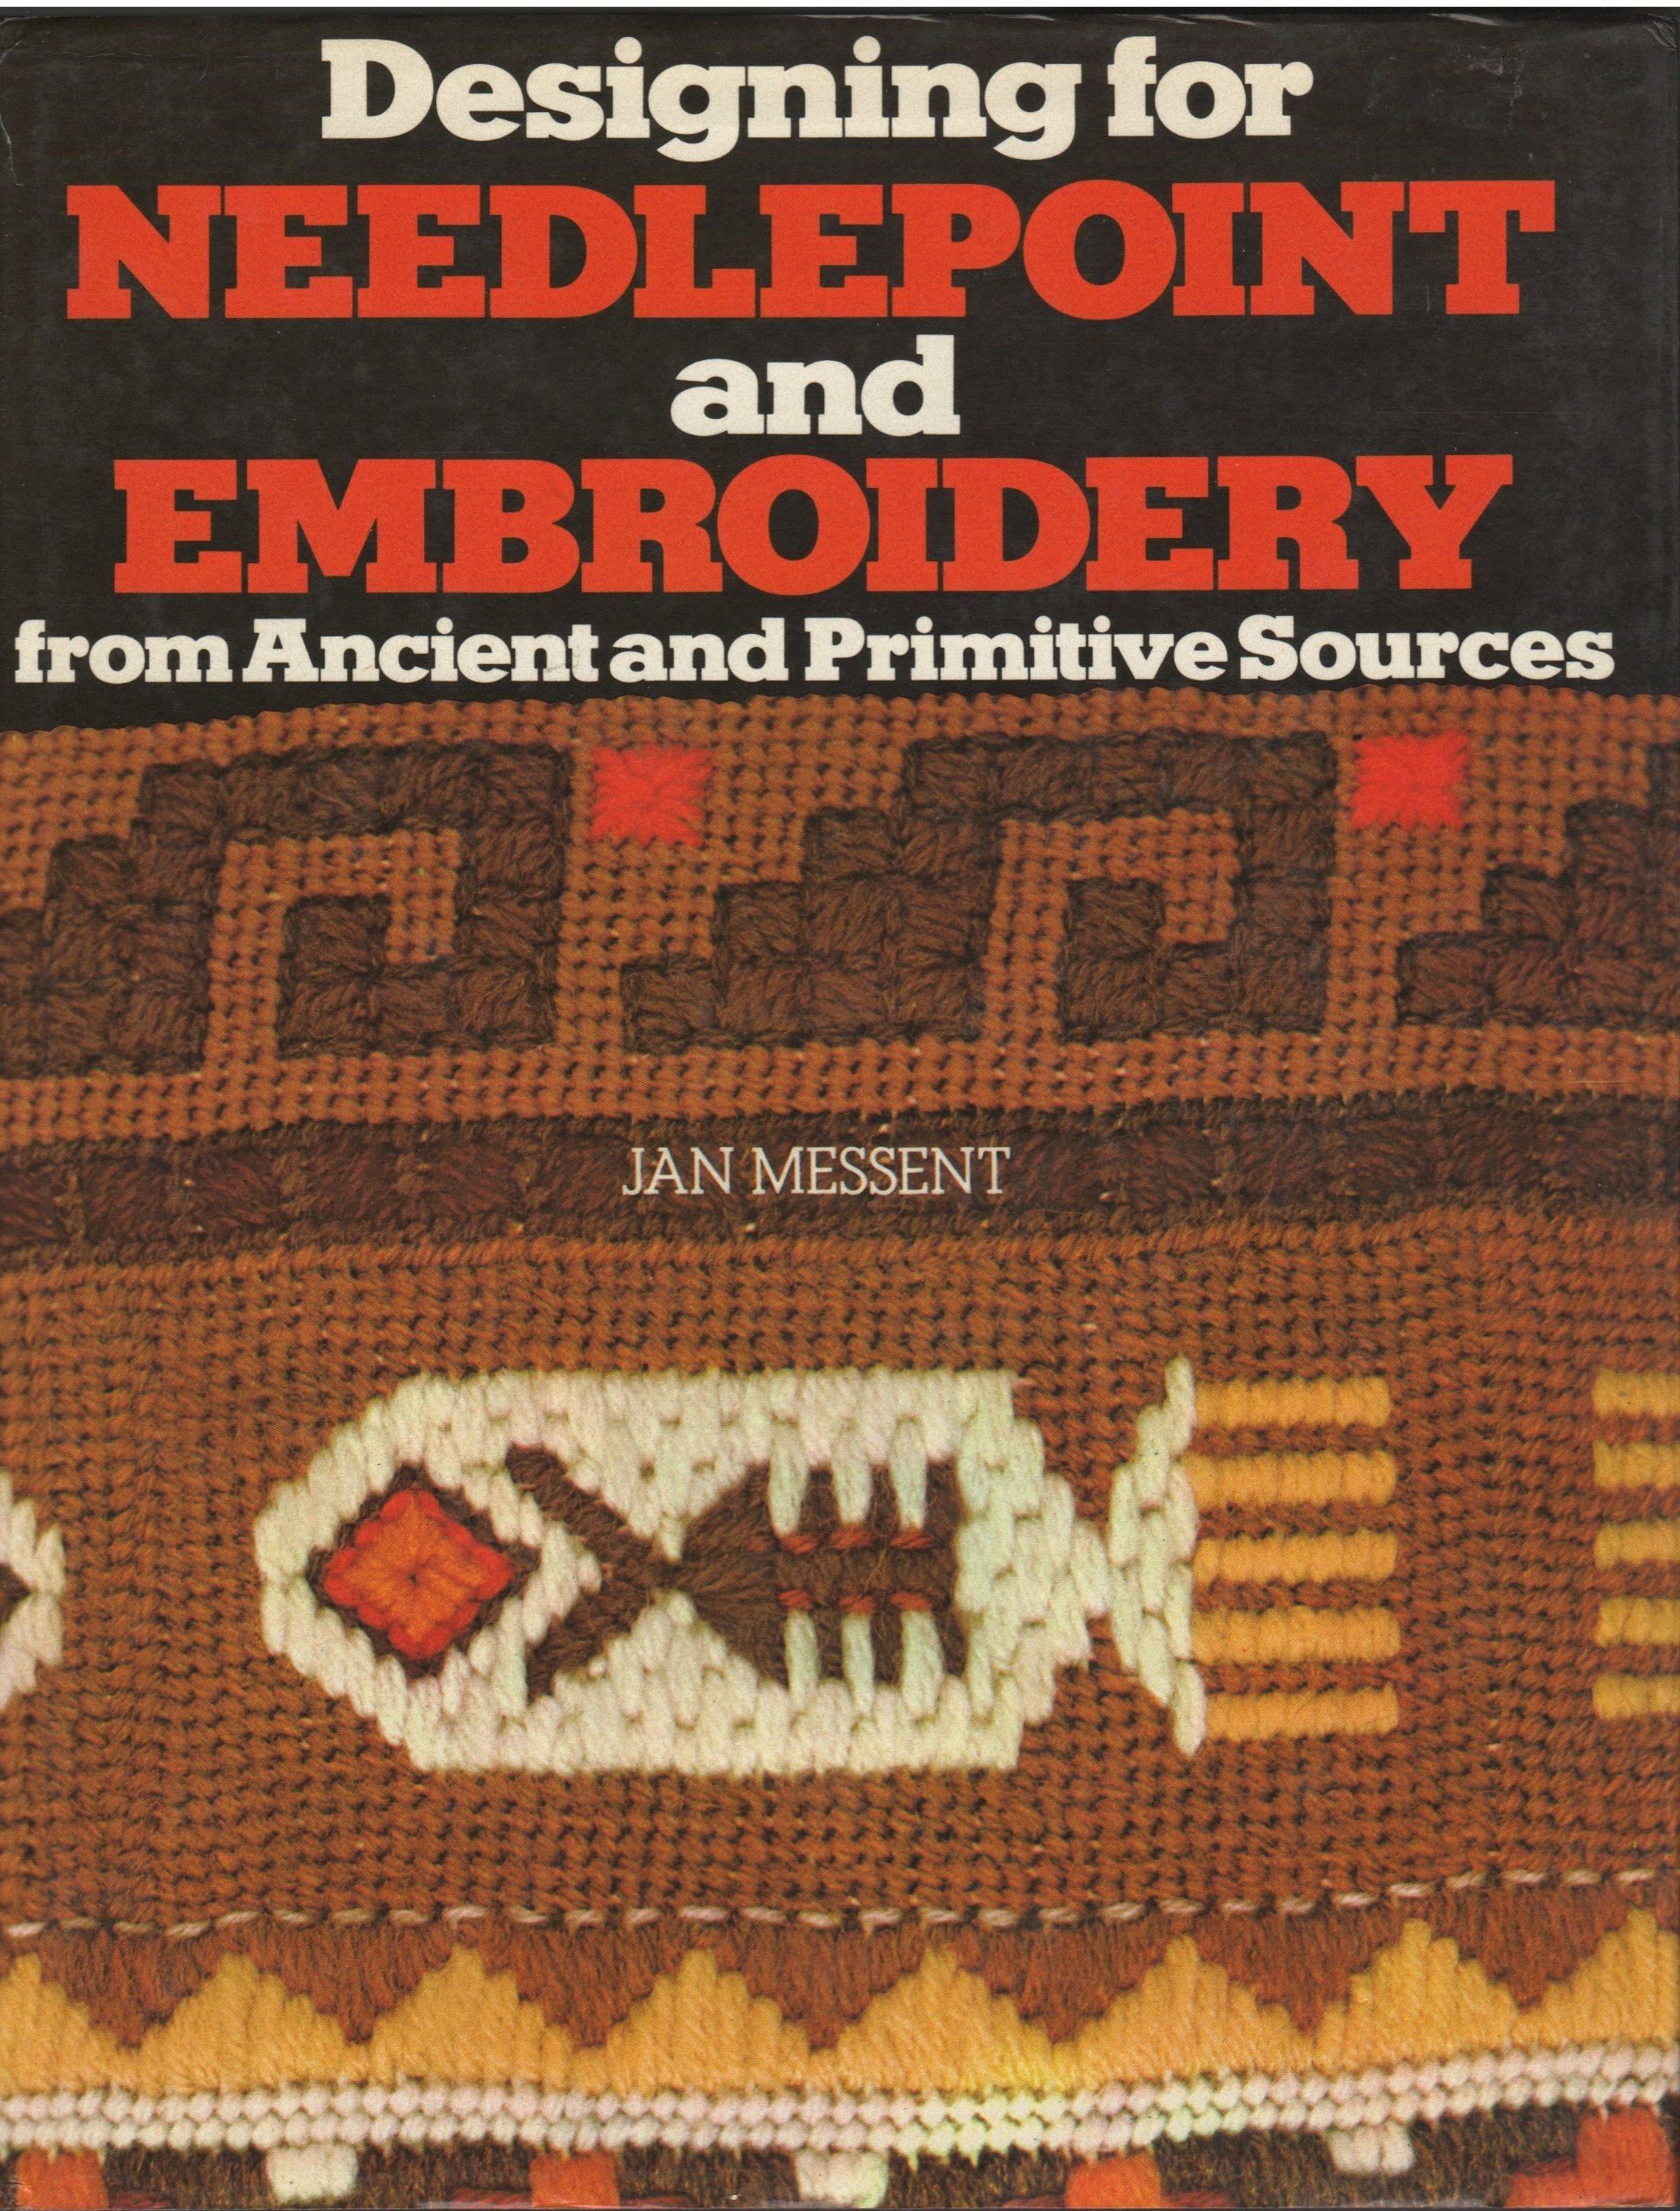 Designing for Needlepoint and Embroidery from Ancient and Primitive  Sources: Jan Messent: 9780025844315: Amazon.com: Books